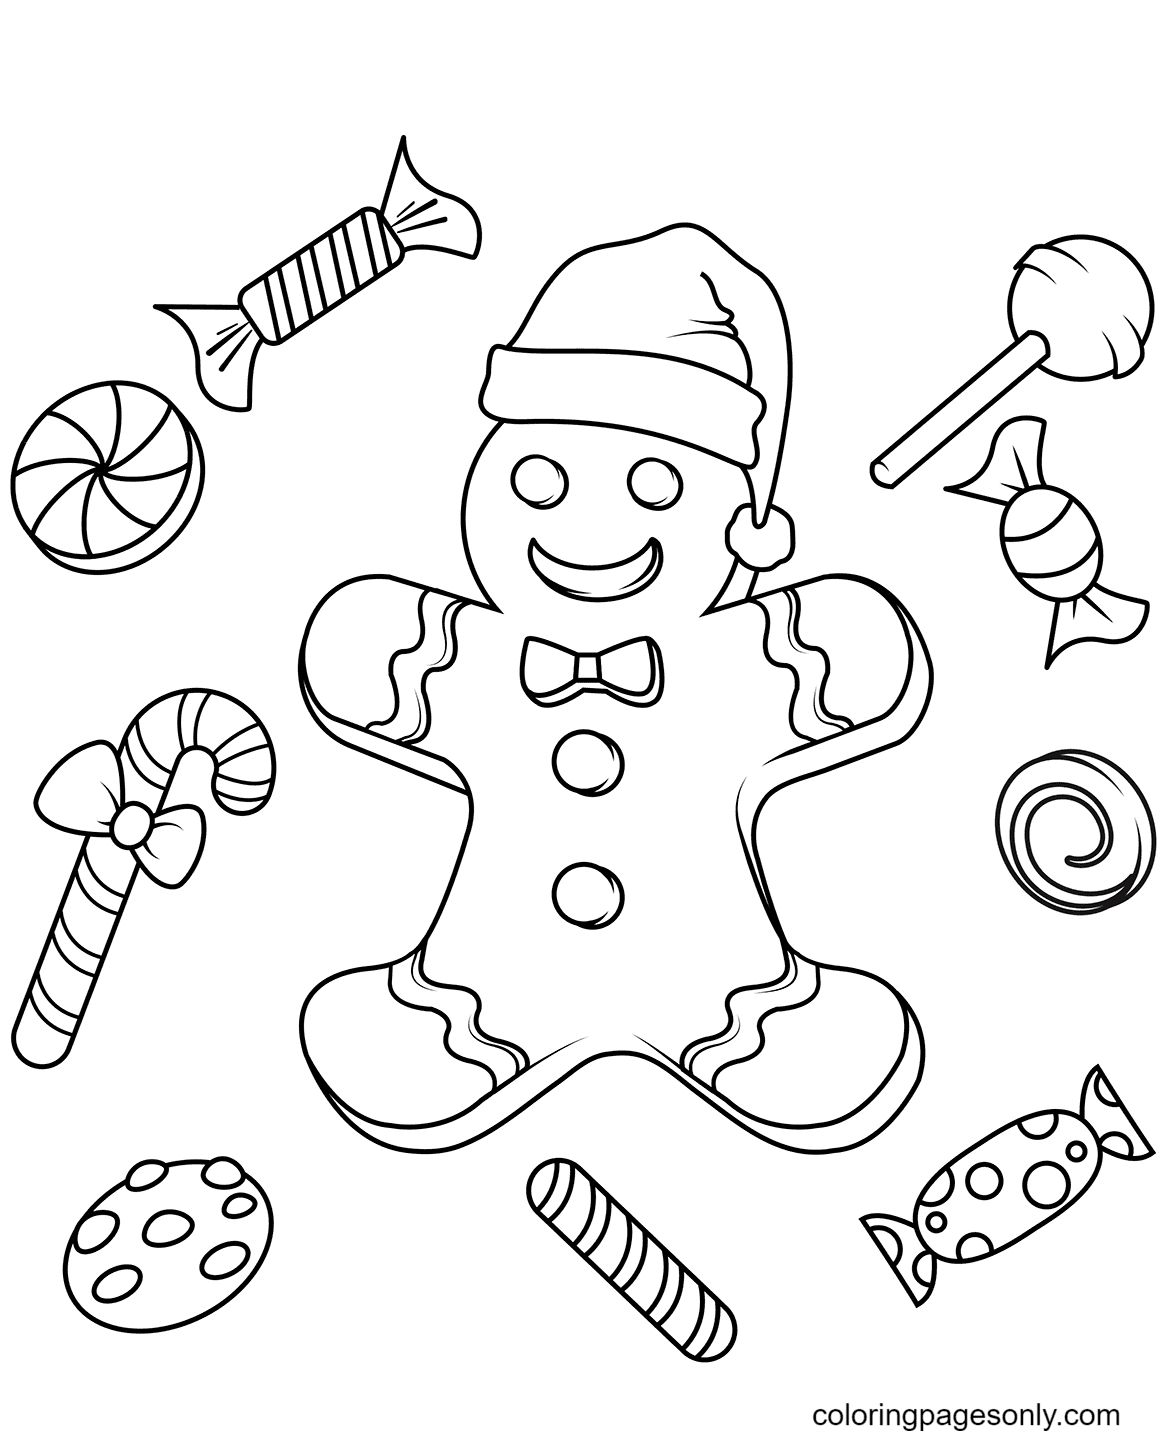 Christmas Gingerbread with Candies Coloring Page